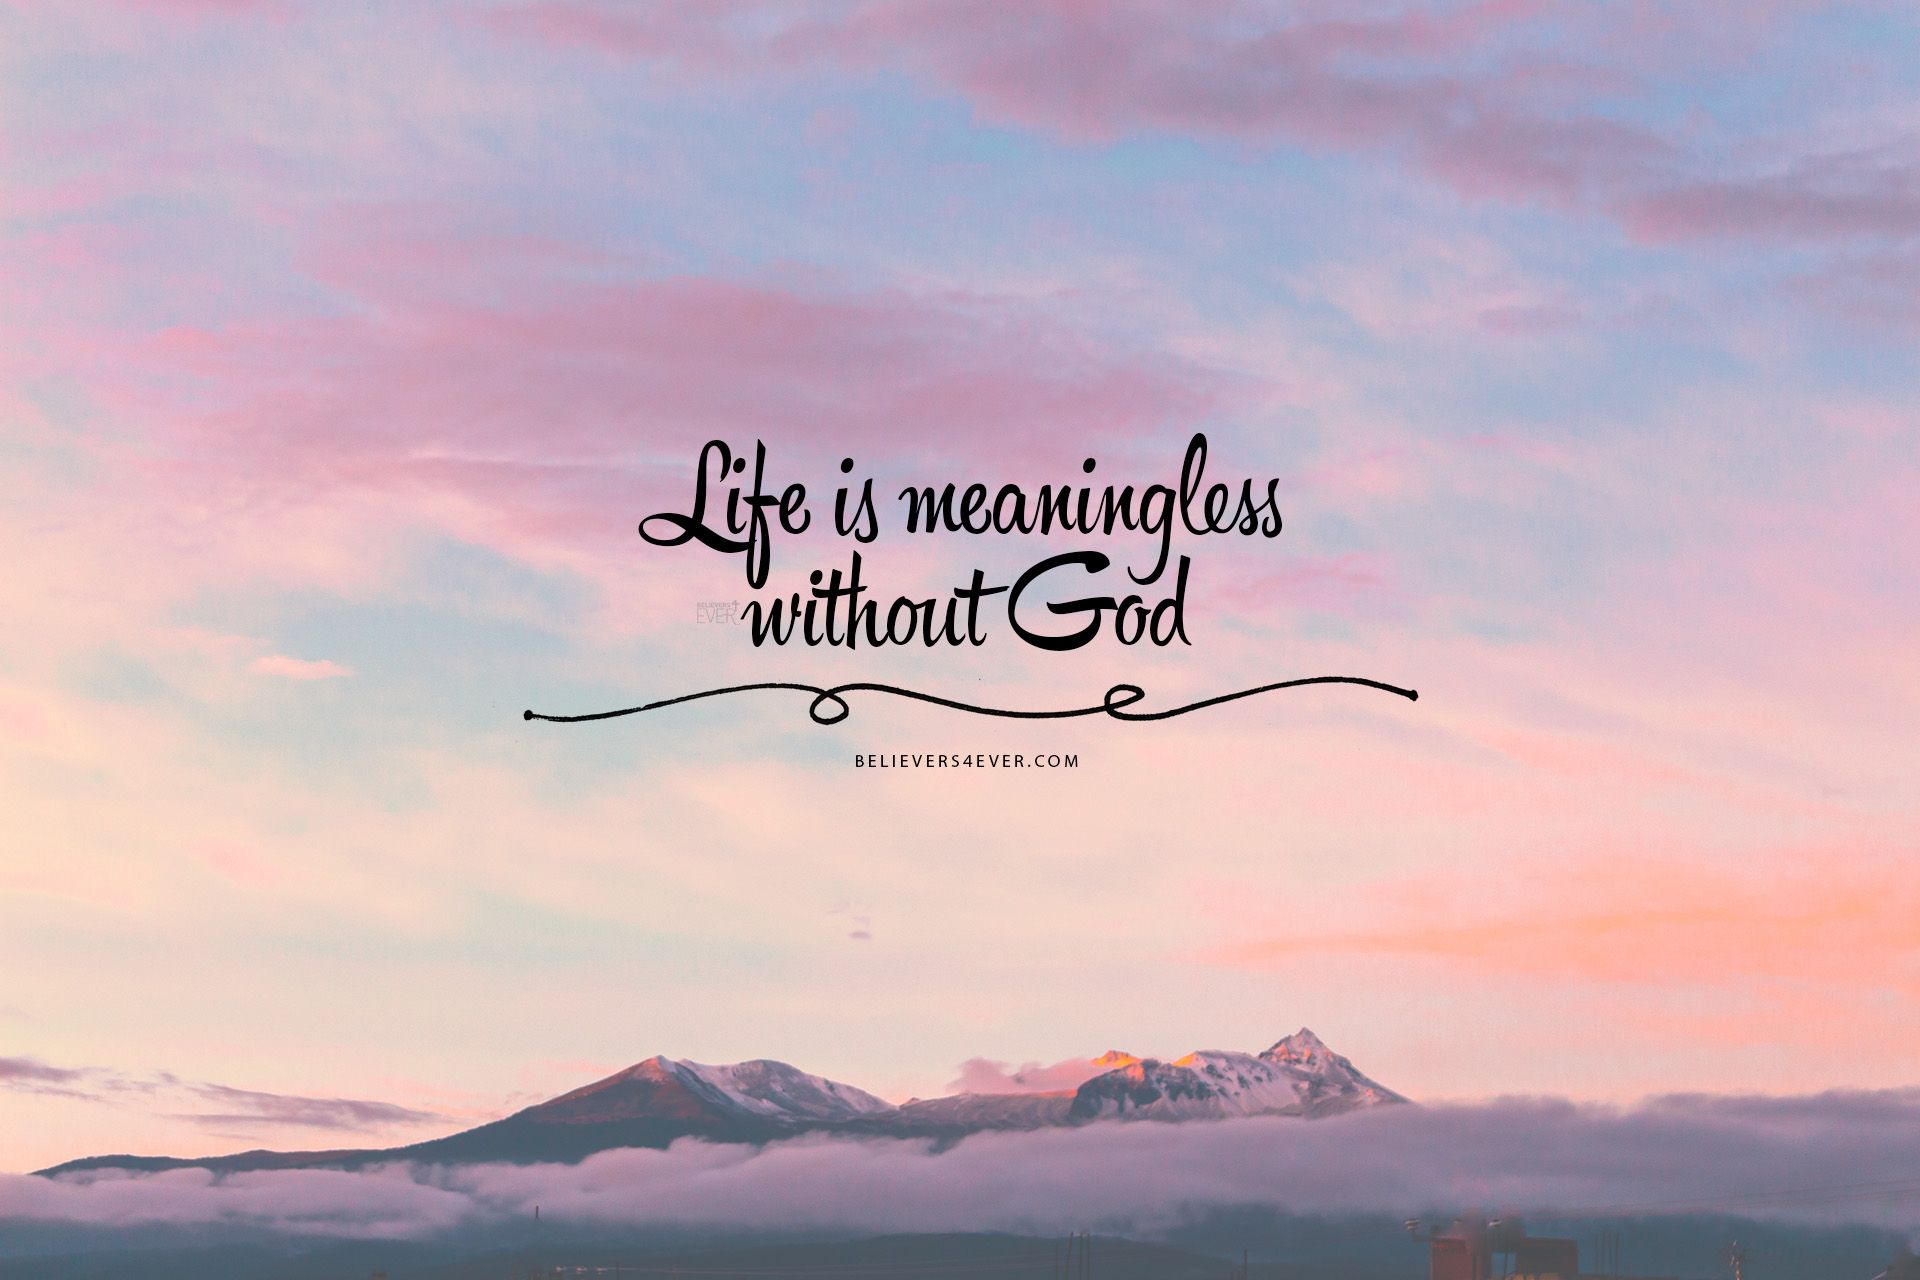 Life Is Meaningless Without God Believers4ever Com Laptop Wallpaper Desktop Wallpapers Ipad Wallpaper Quotes Laptop Wallpaper Quotes